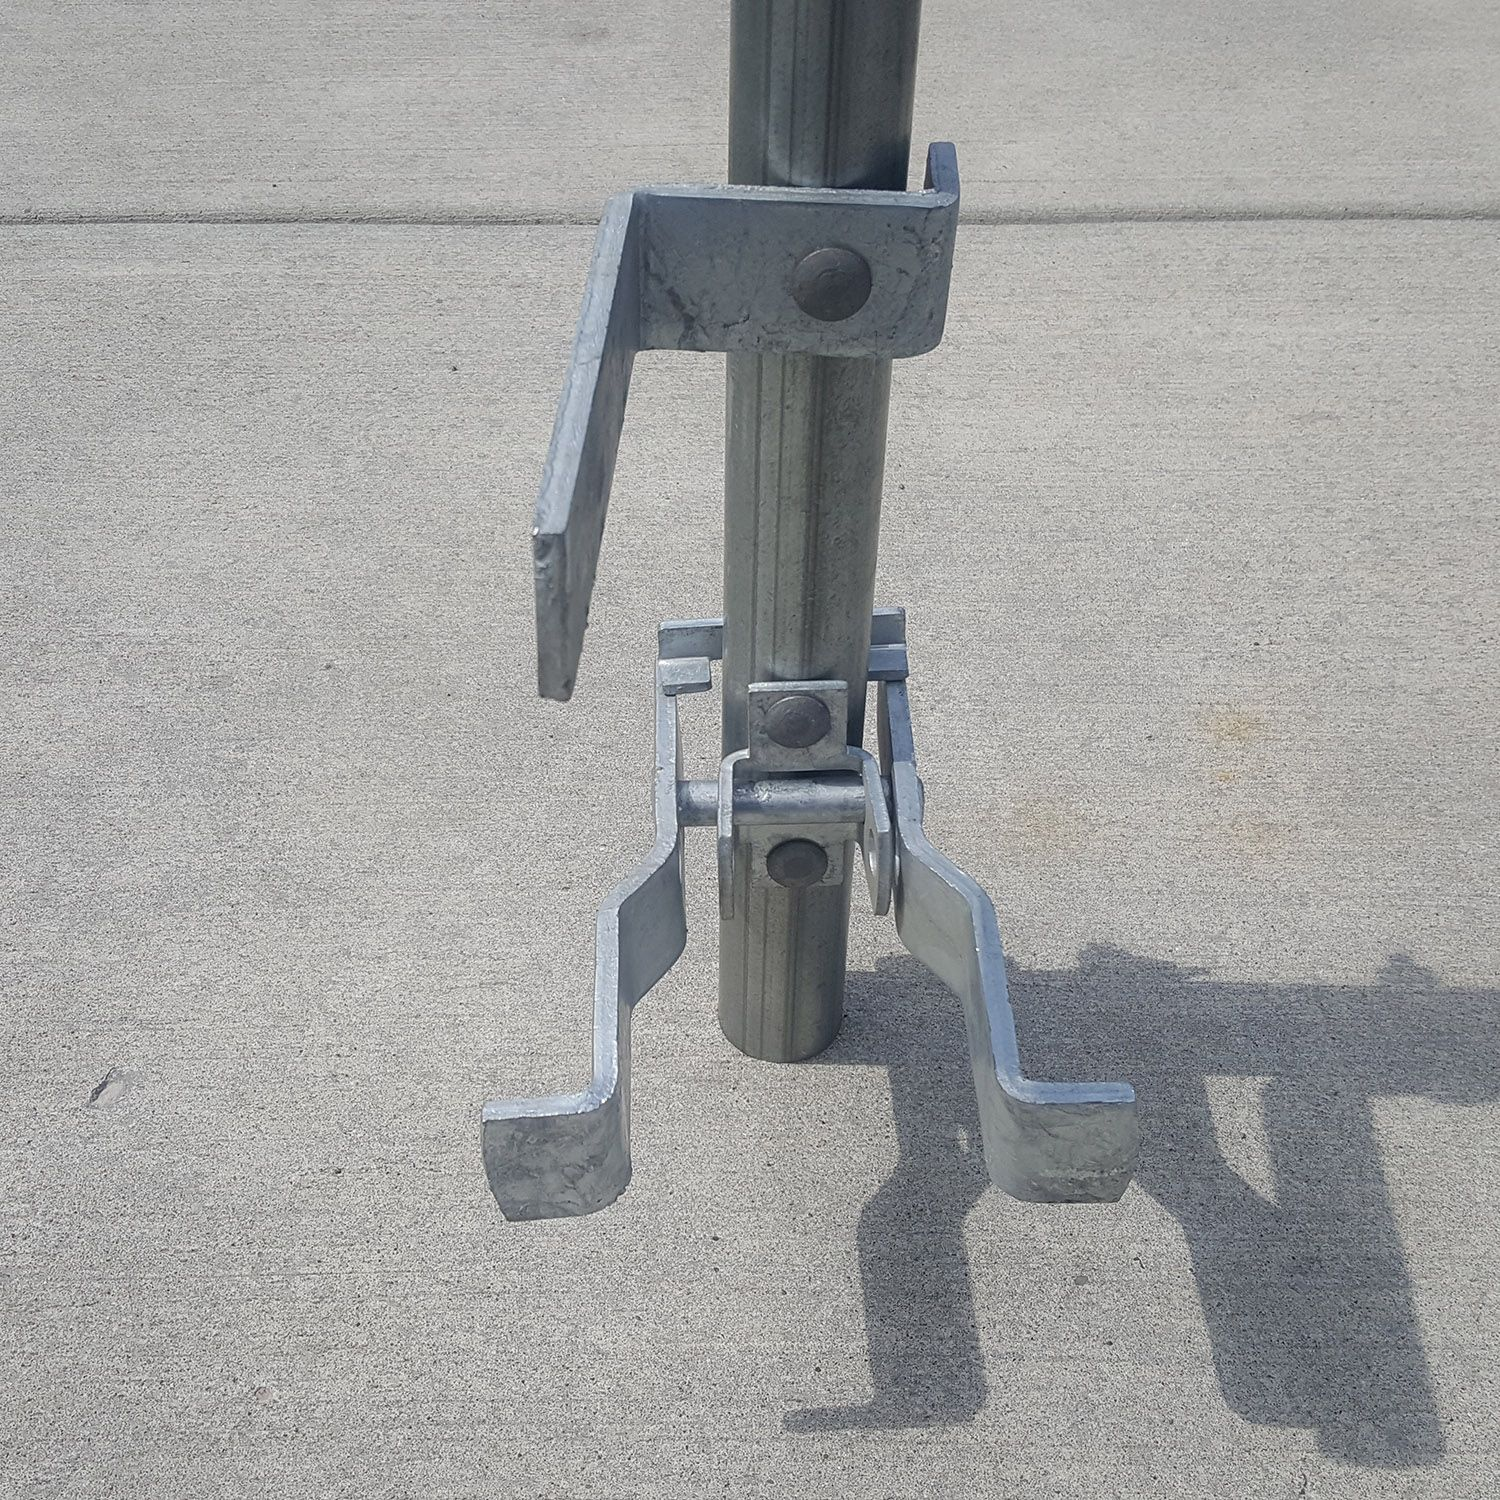 High Point Lacrosse >> Chain Link Fence Gate Fulcrum Latch | Hoover Fence Co.